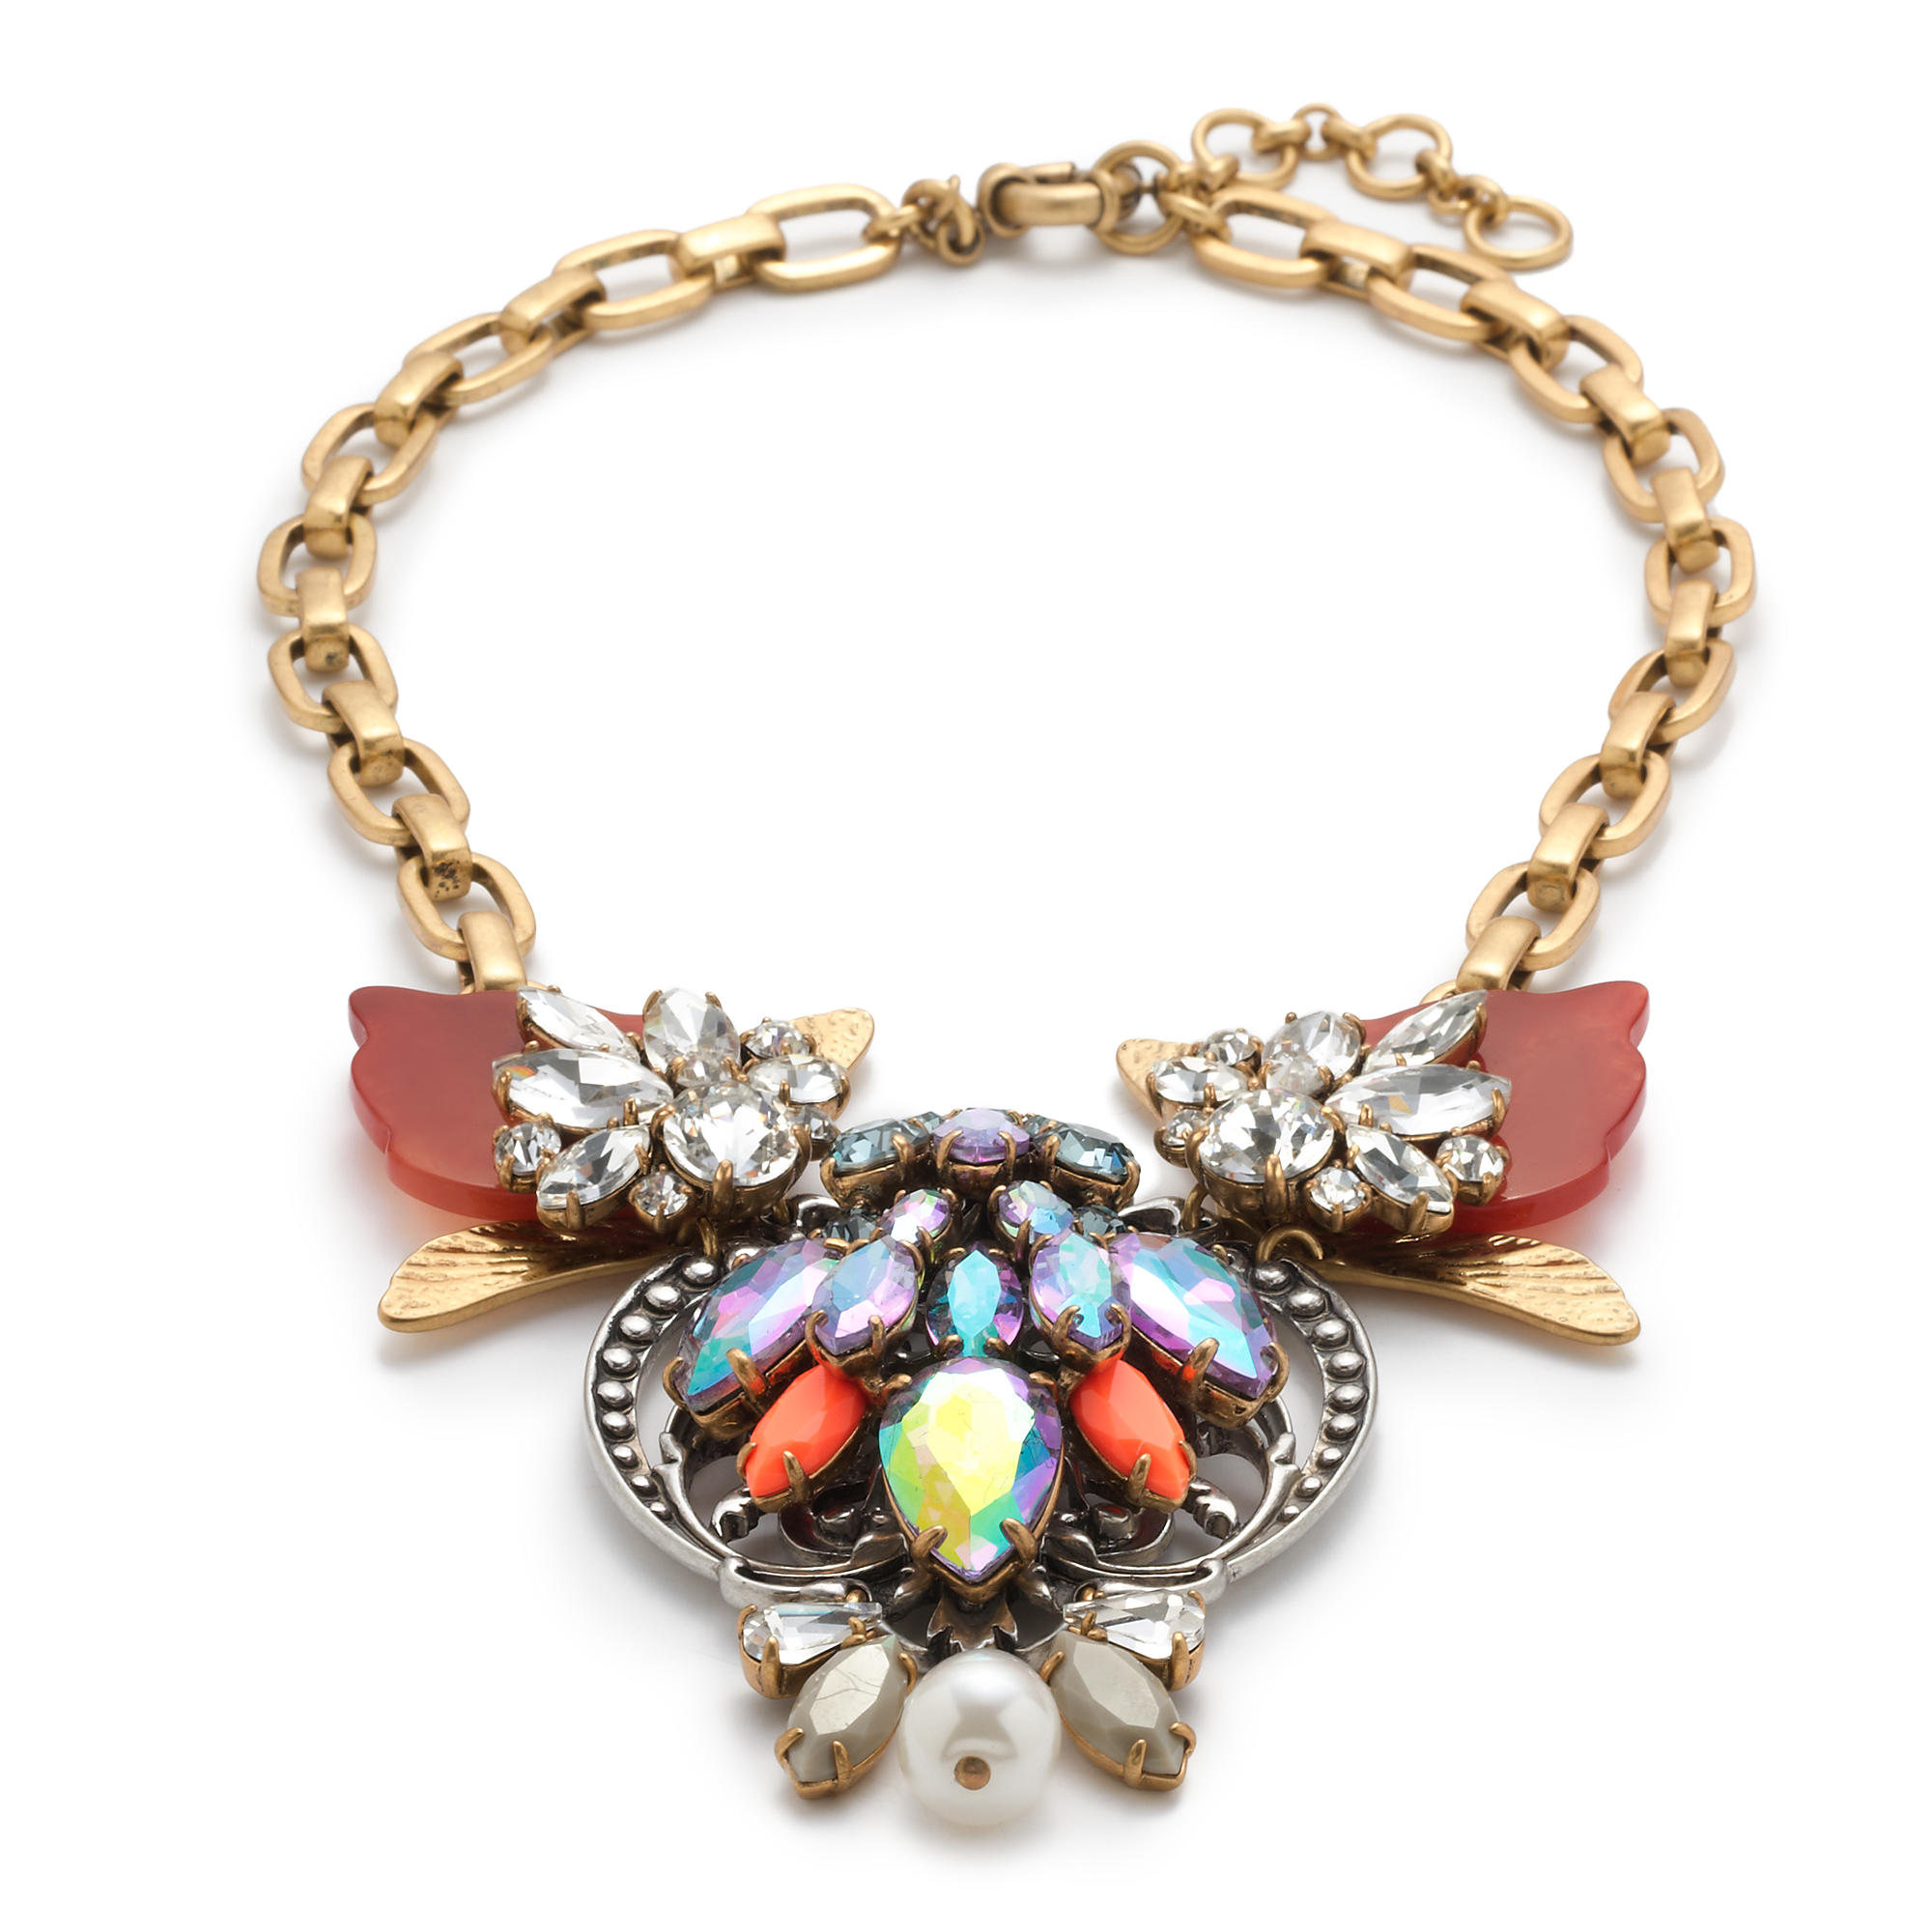 Estate jewel necklace j crew for J crew jewelry 2015